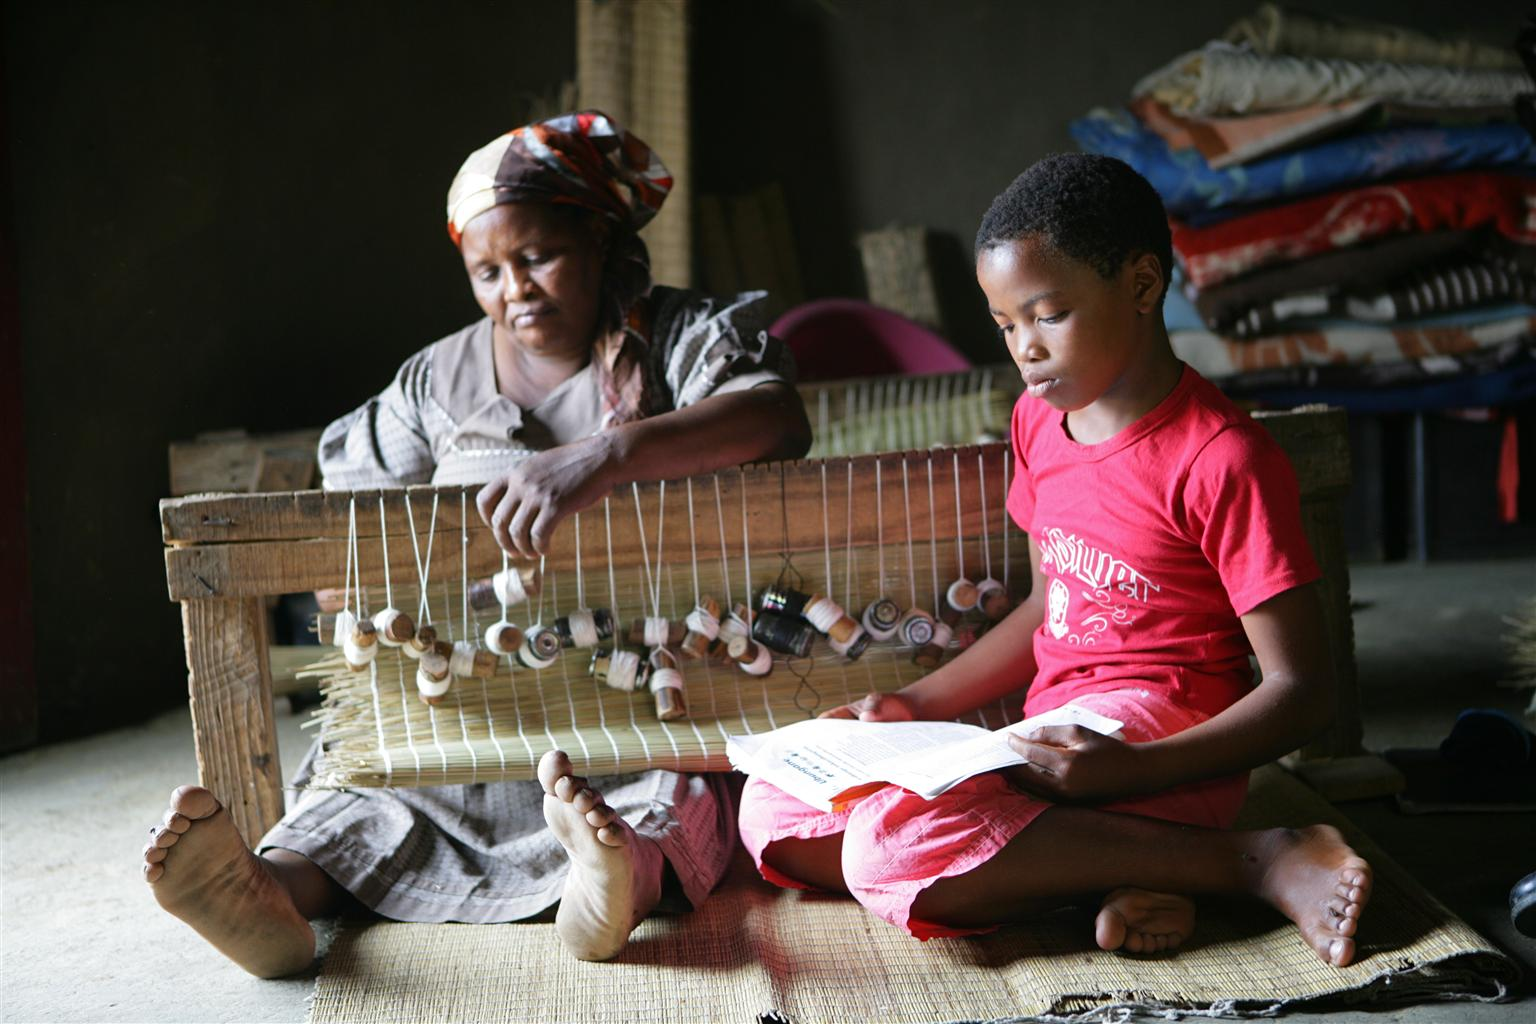 Nondumiso (9) reads a school assignment beside her grandmother, in their home in KwaZulu-Natal Province, South Africa.